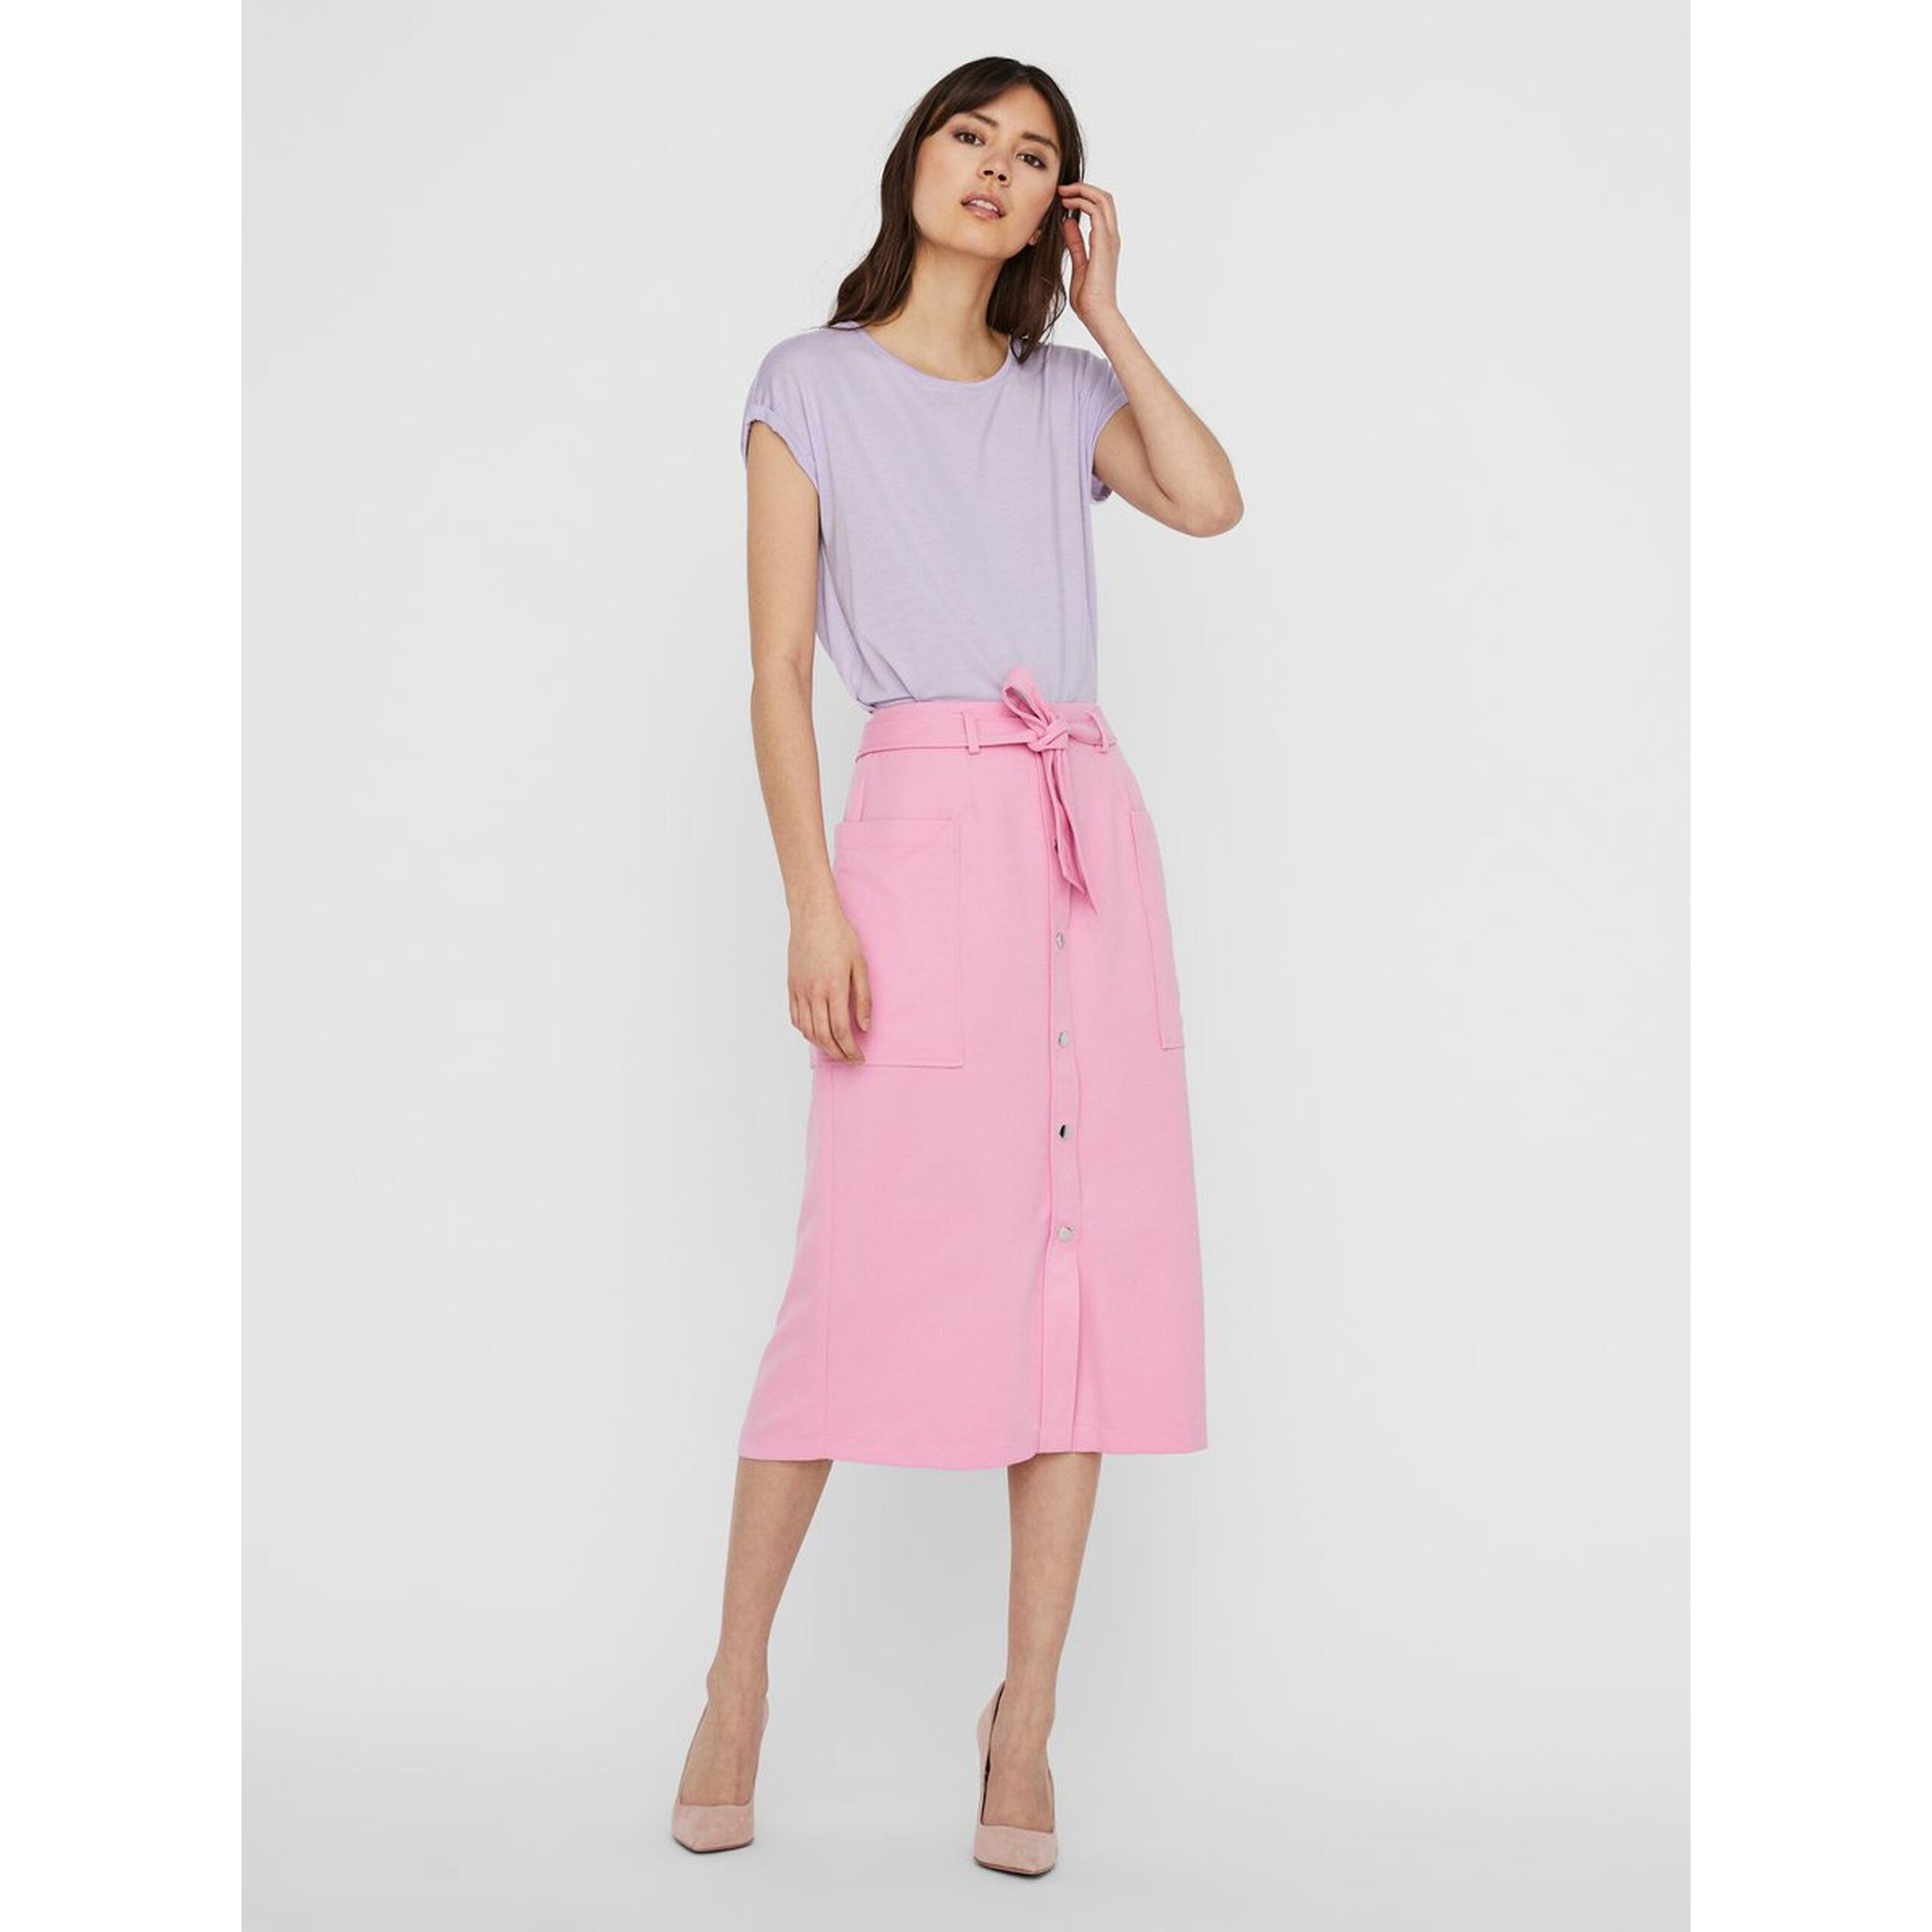 VERO MODA : Front button midi skirt